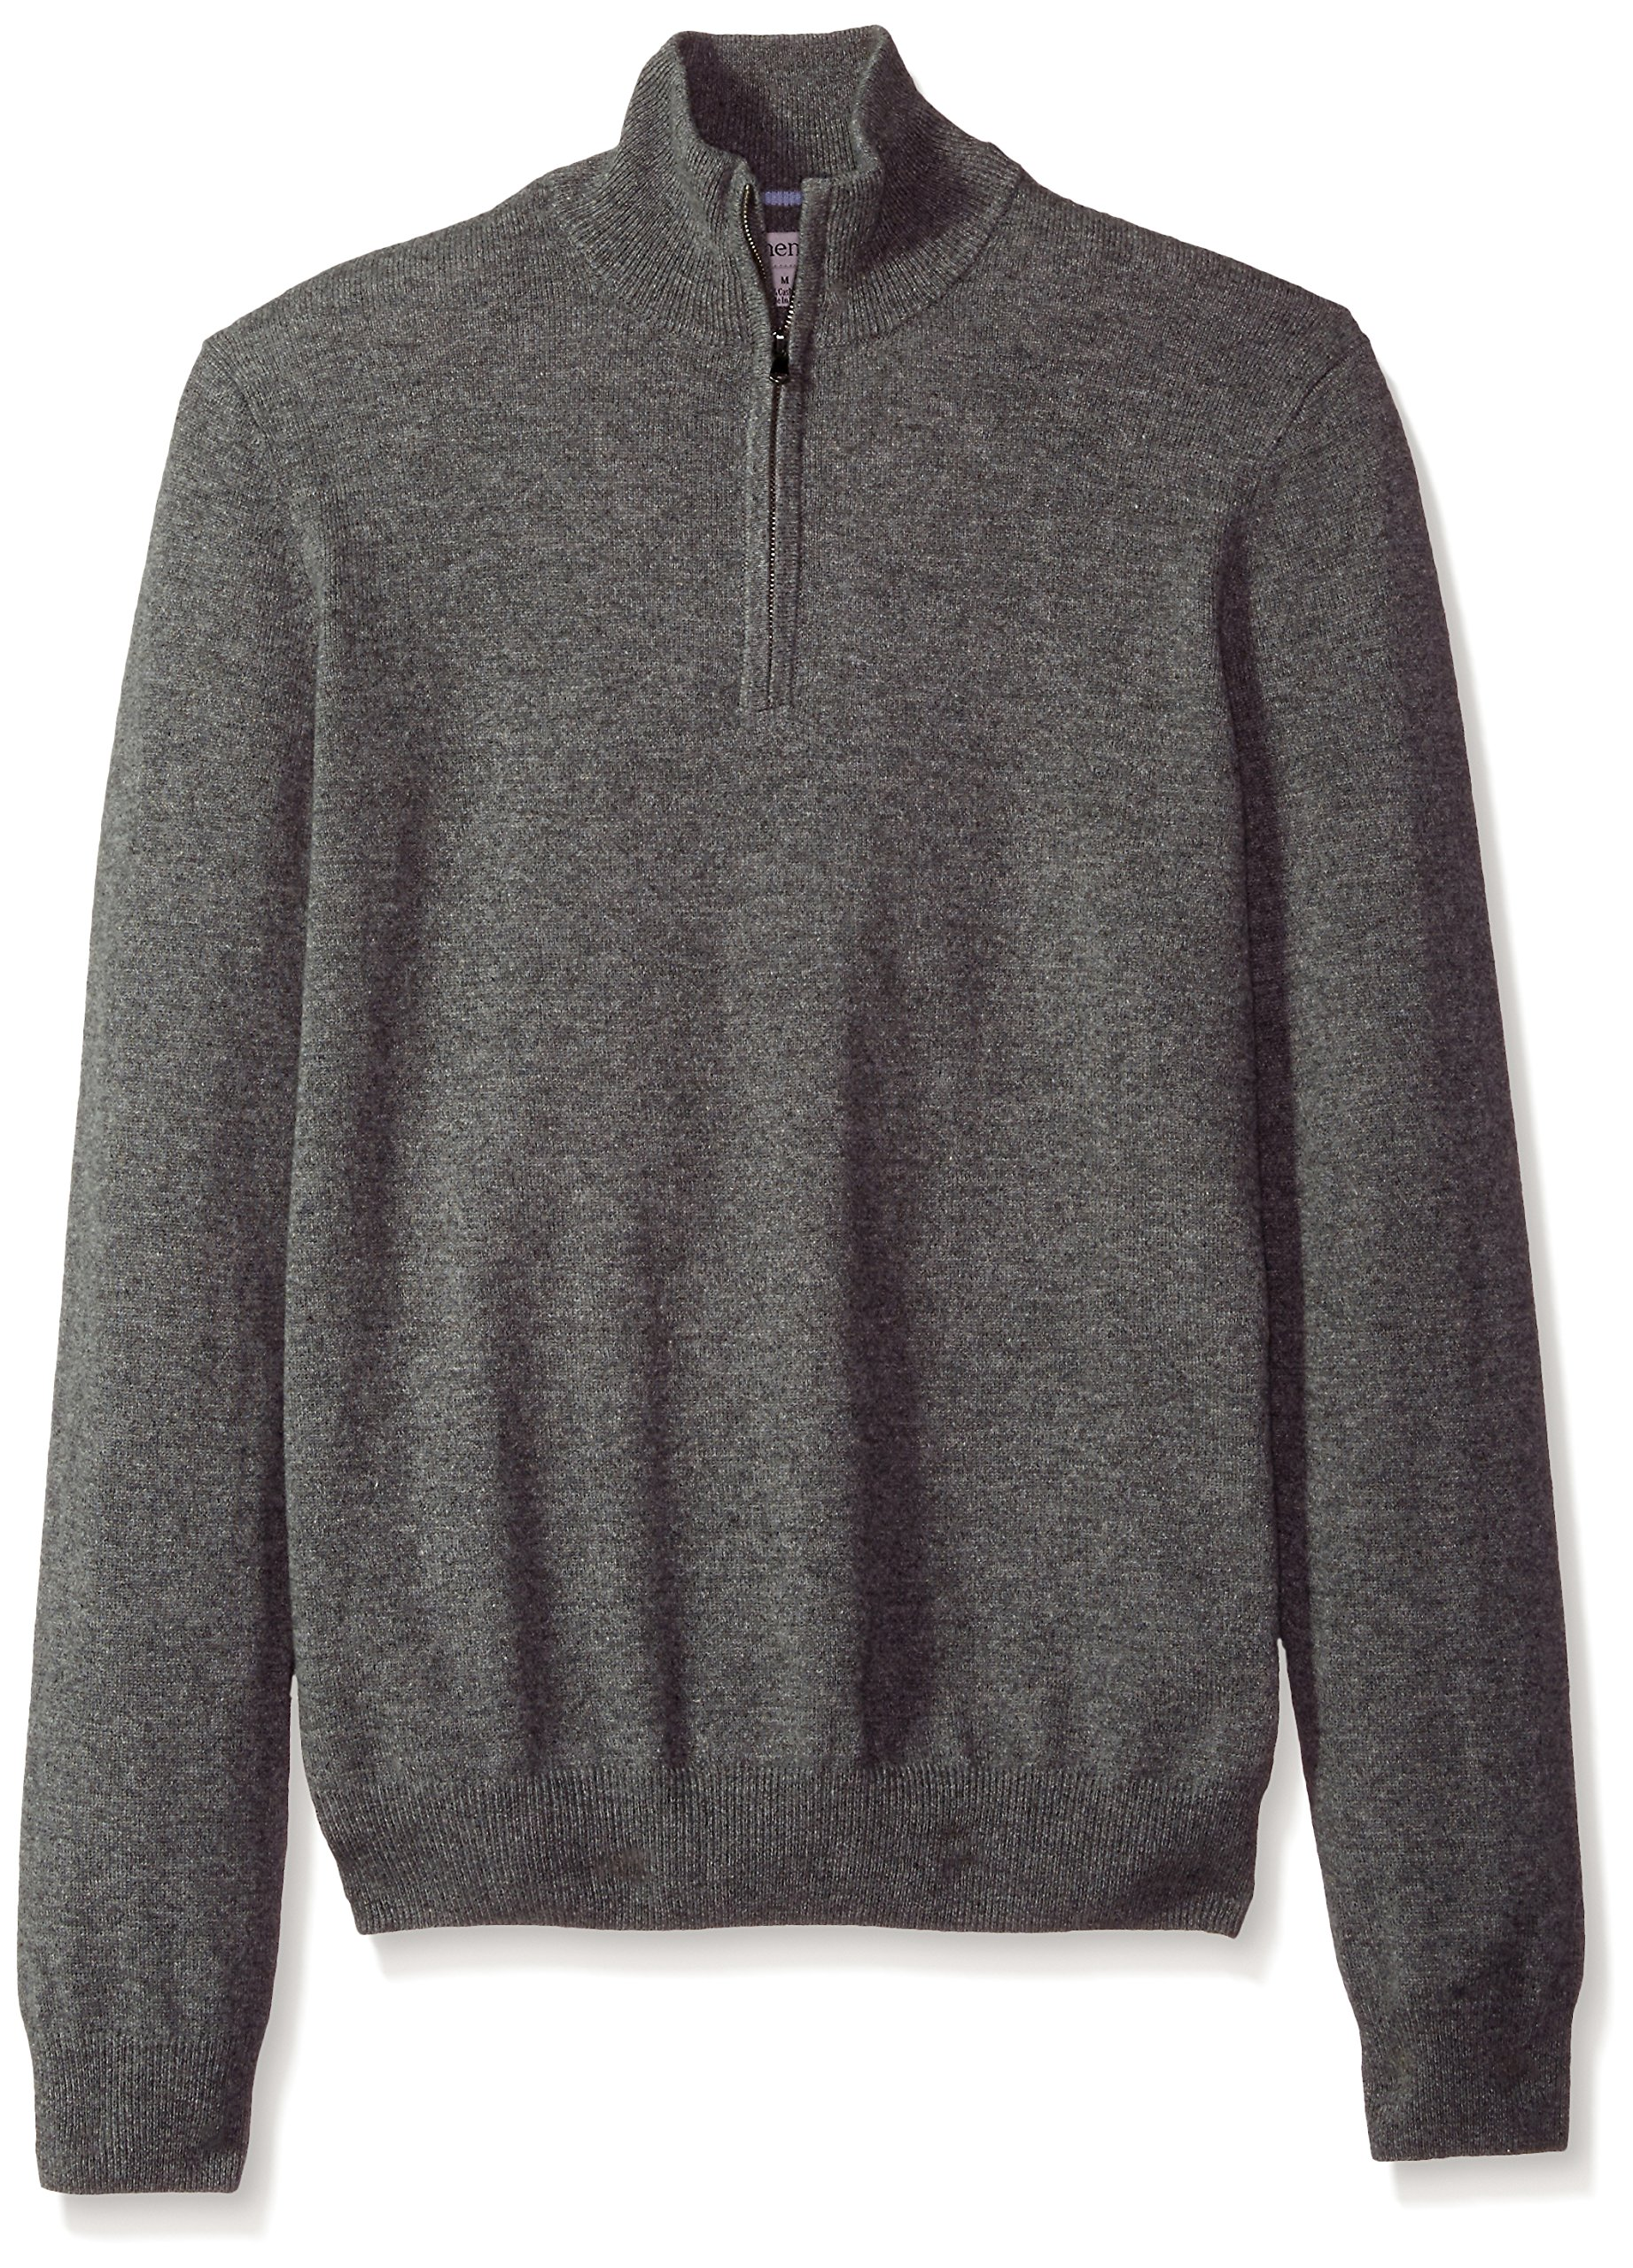 Phenix Cashmere Men's 1/4 Zip Sweater With Contrast Color Tipping, Gry/Lt. Blue, Small